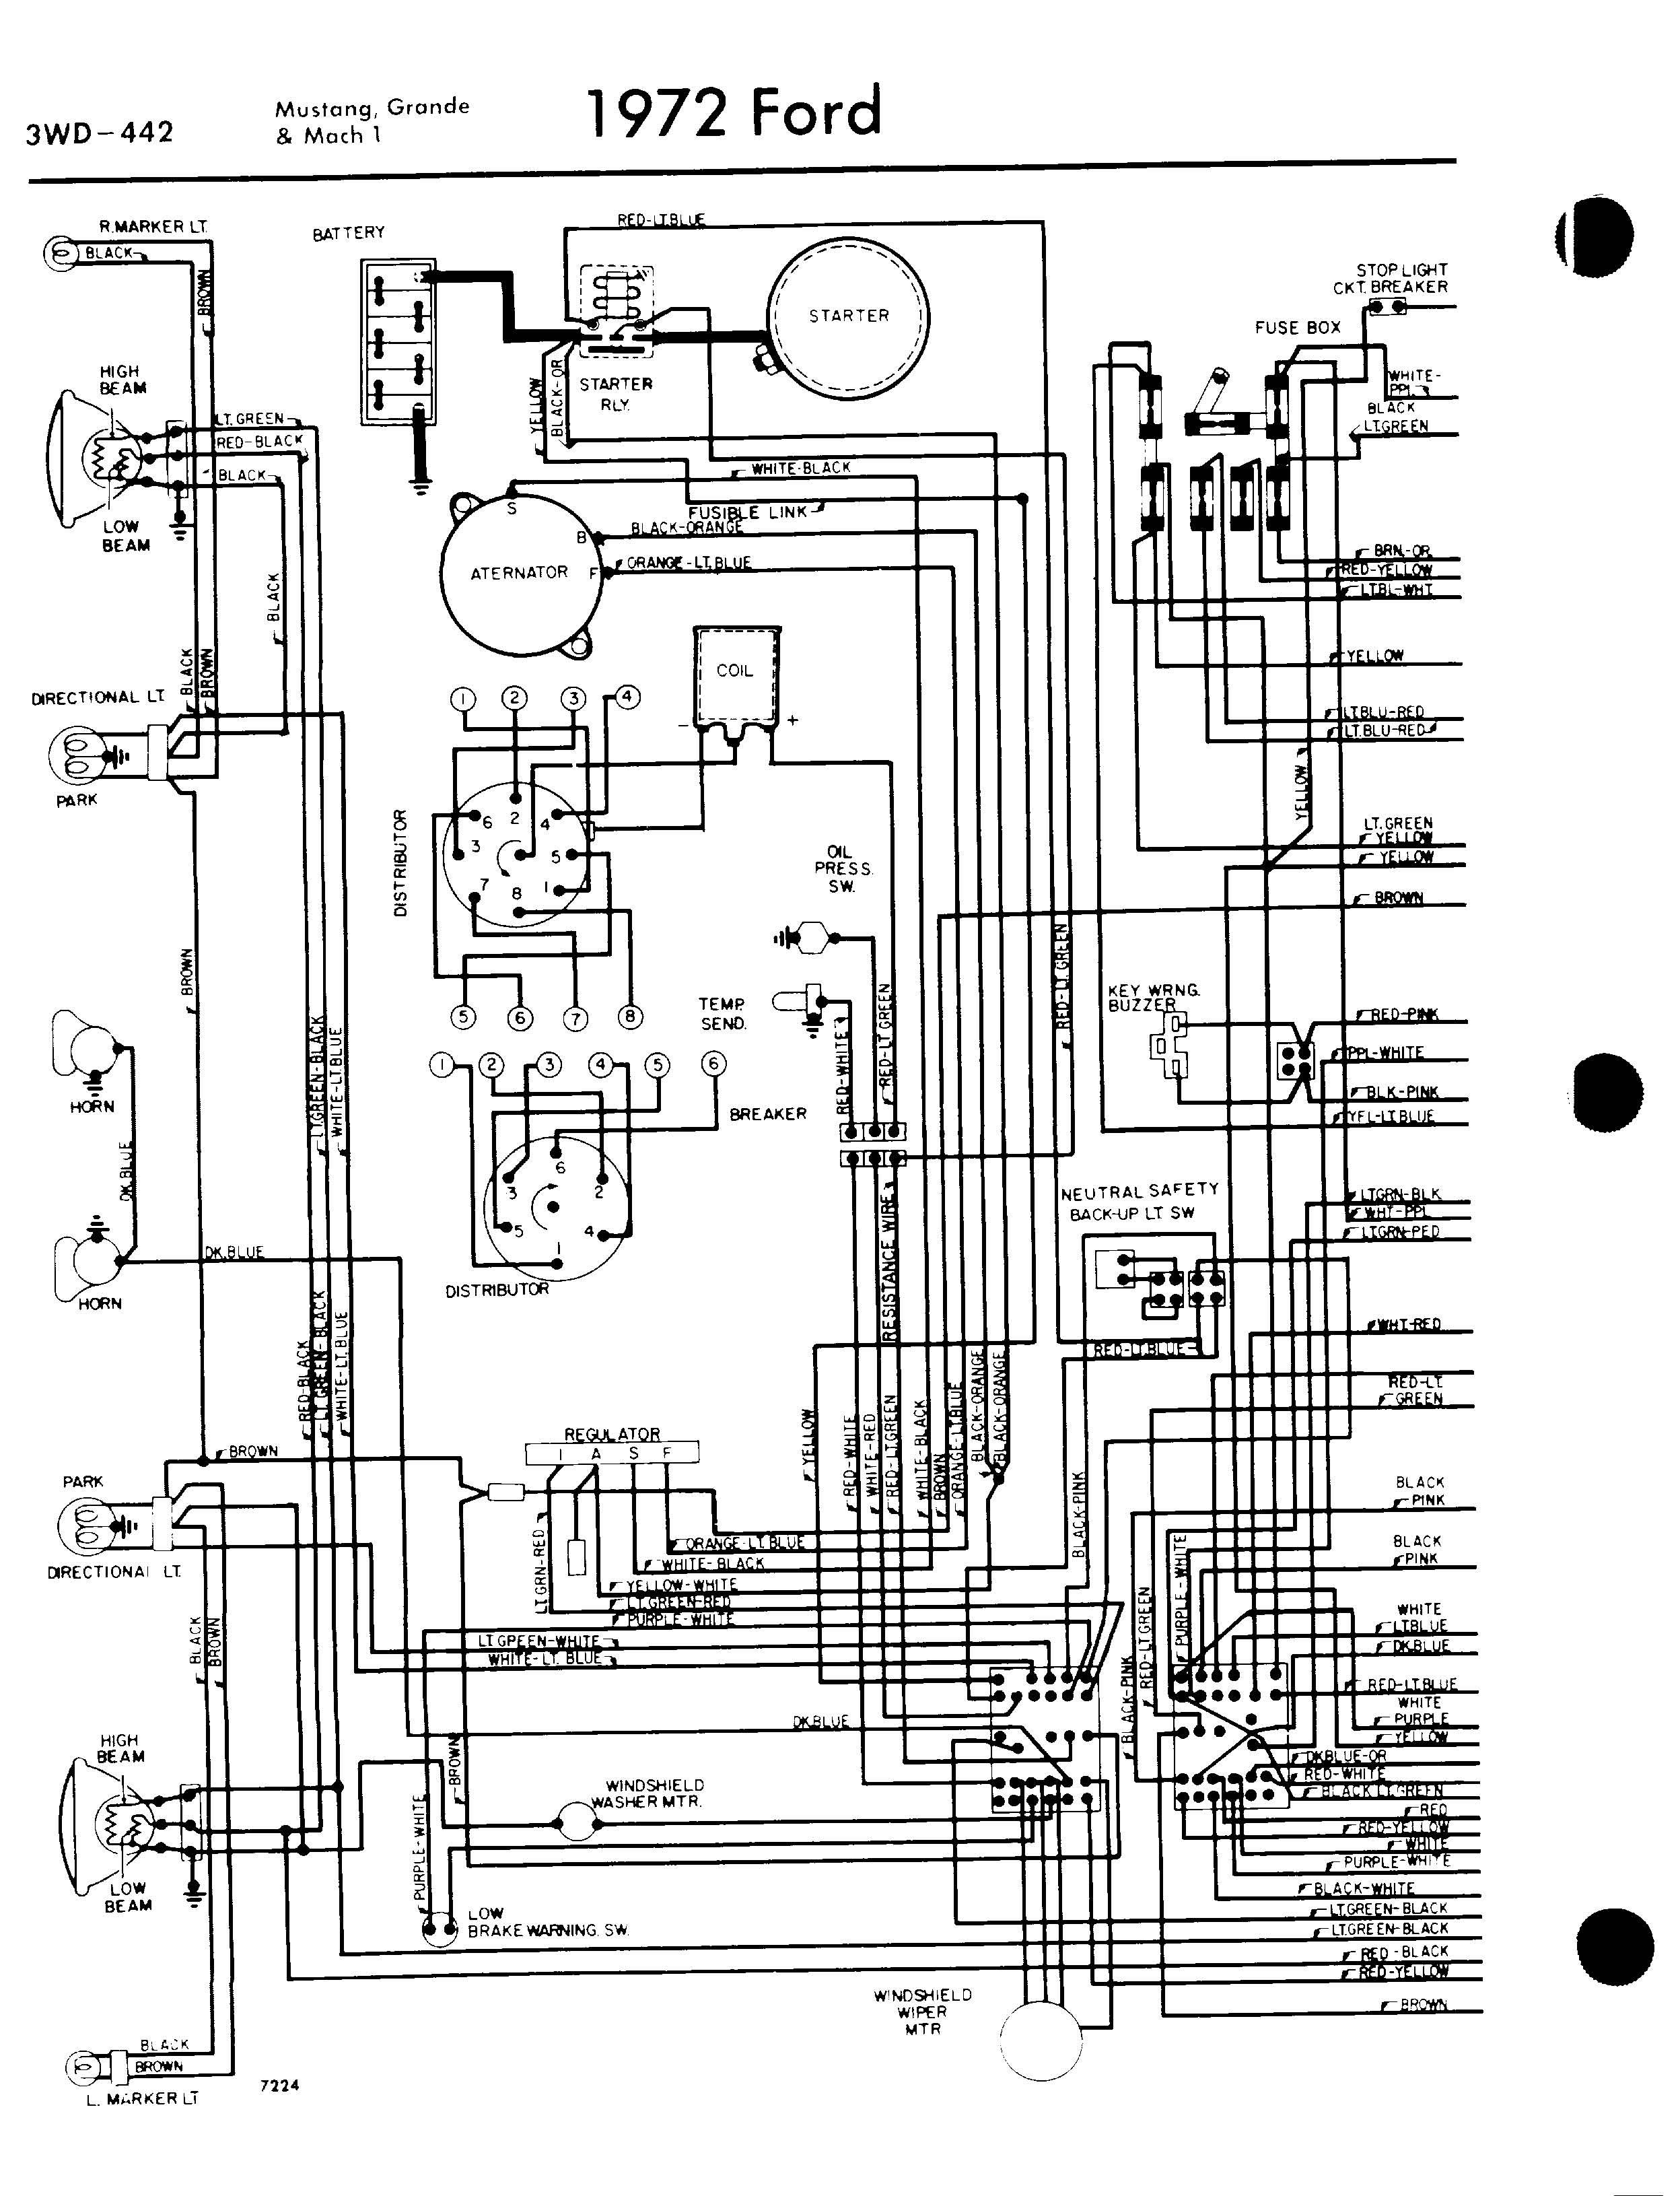 72 mach1 alternator wire harness diagram  Yahoo Search